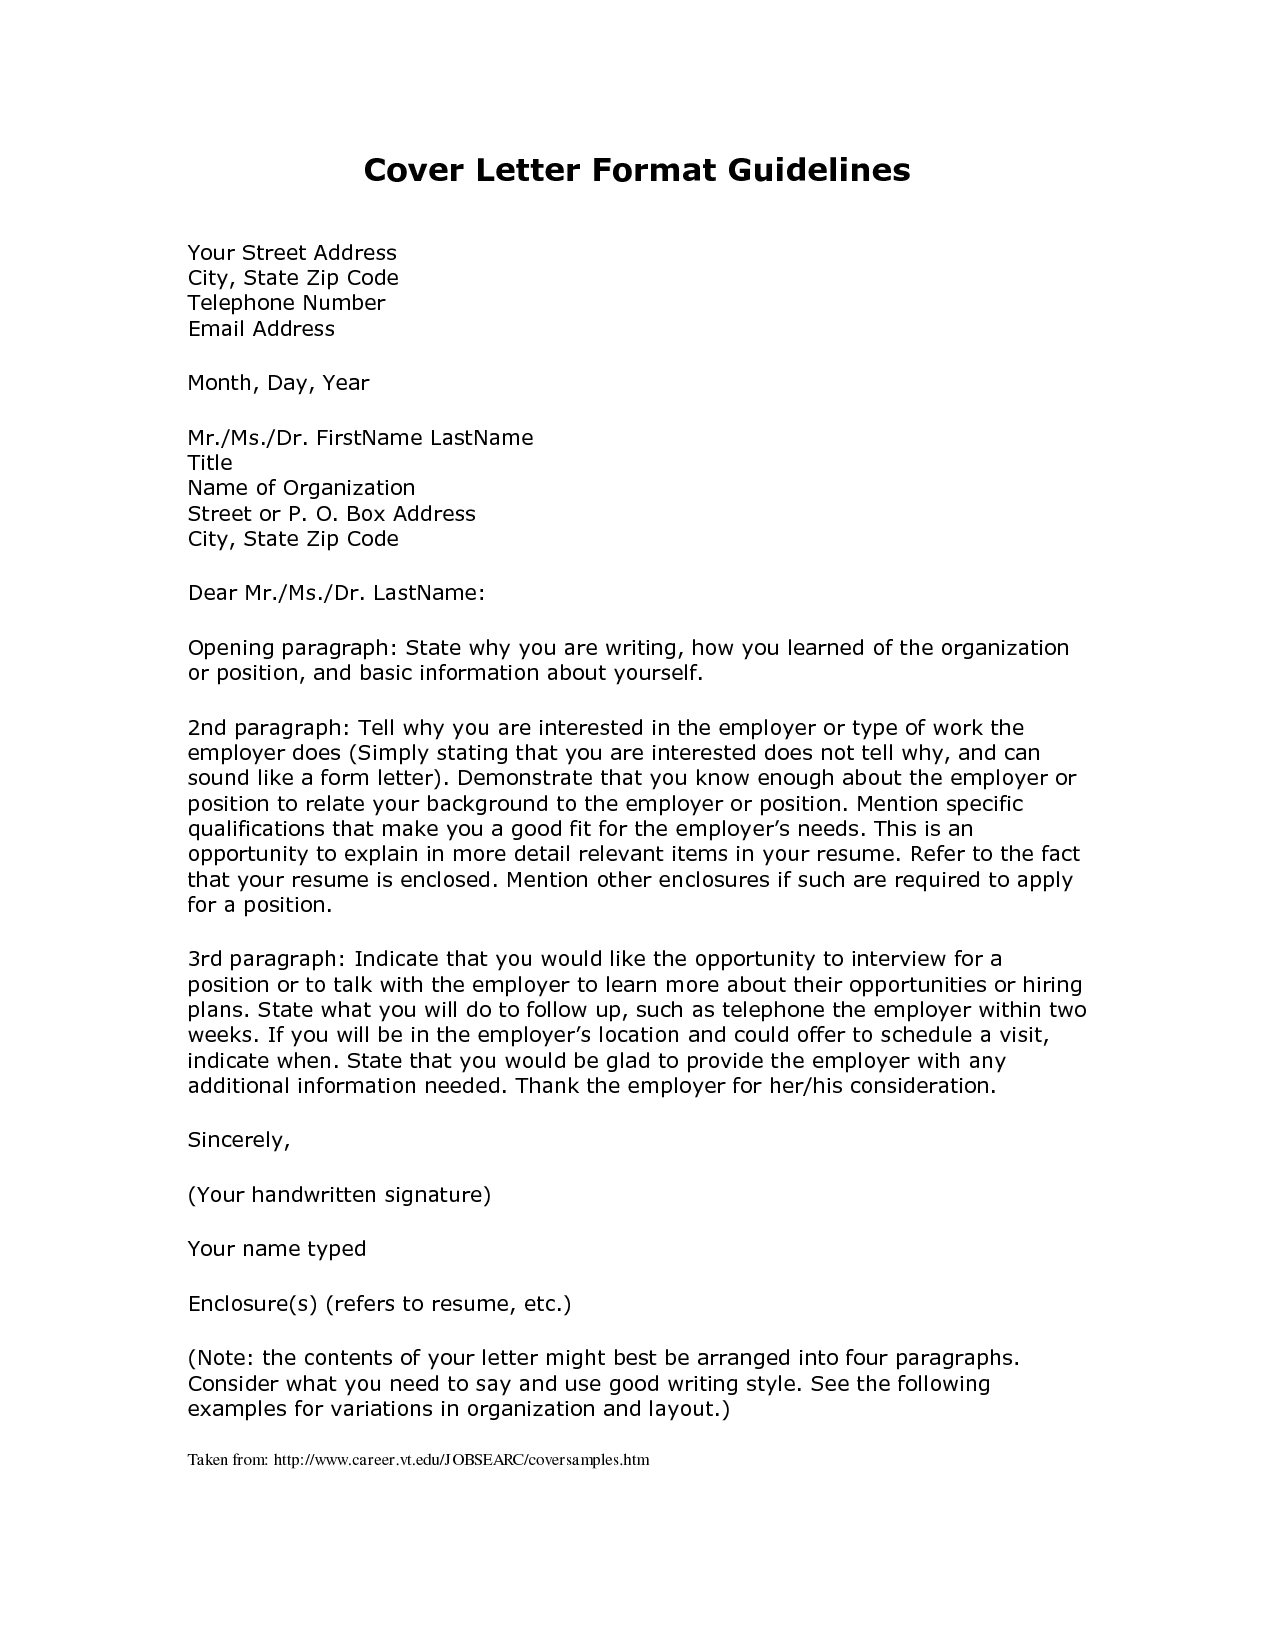 Format For Cover Letter - Buyretina intended for Formal Business Cover Letter Format 22544